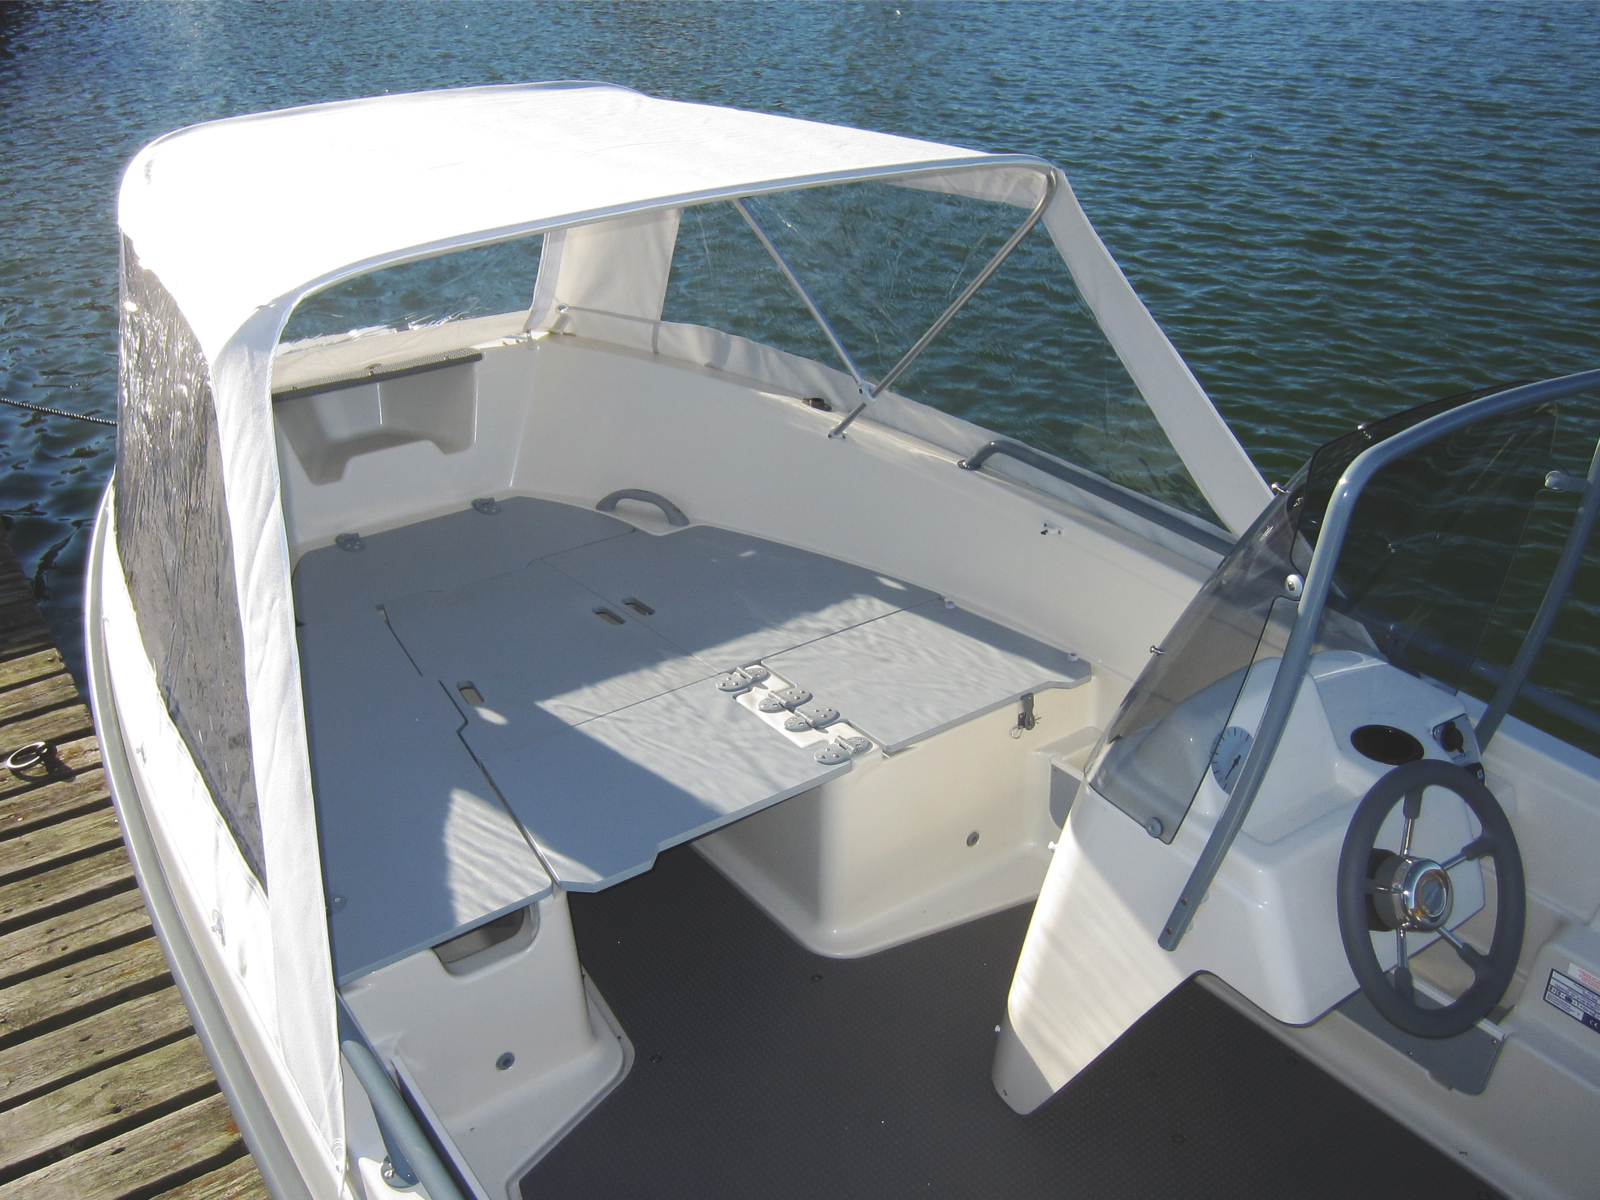 Canopies And Accessories : Bow canopy c covers and canopies terhi